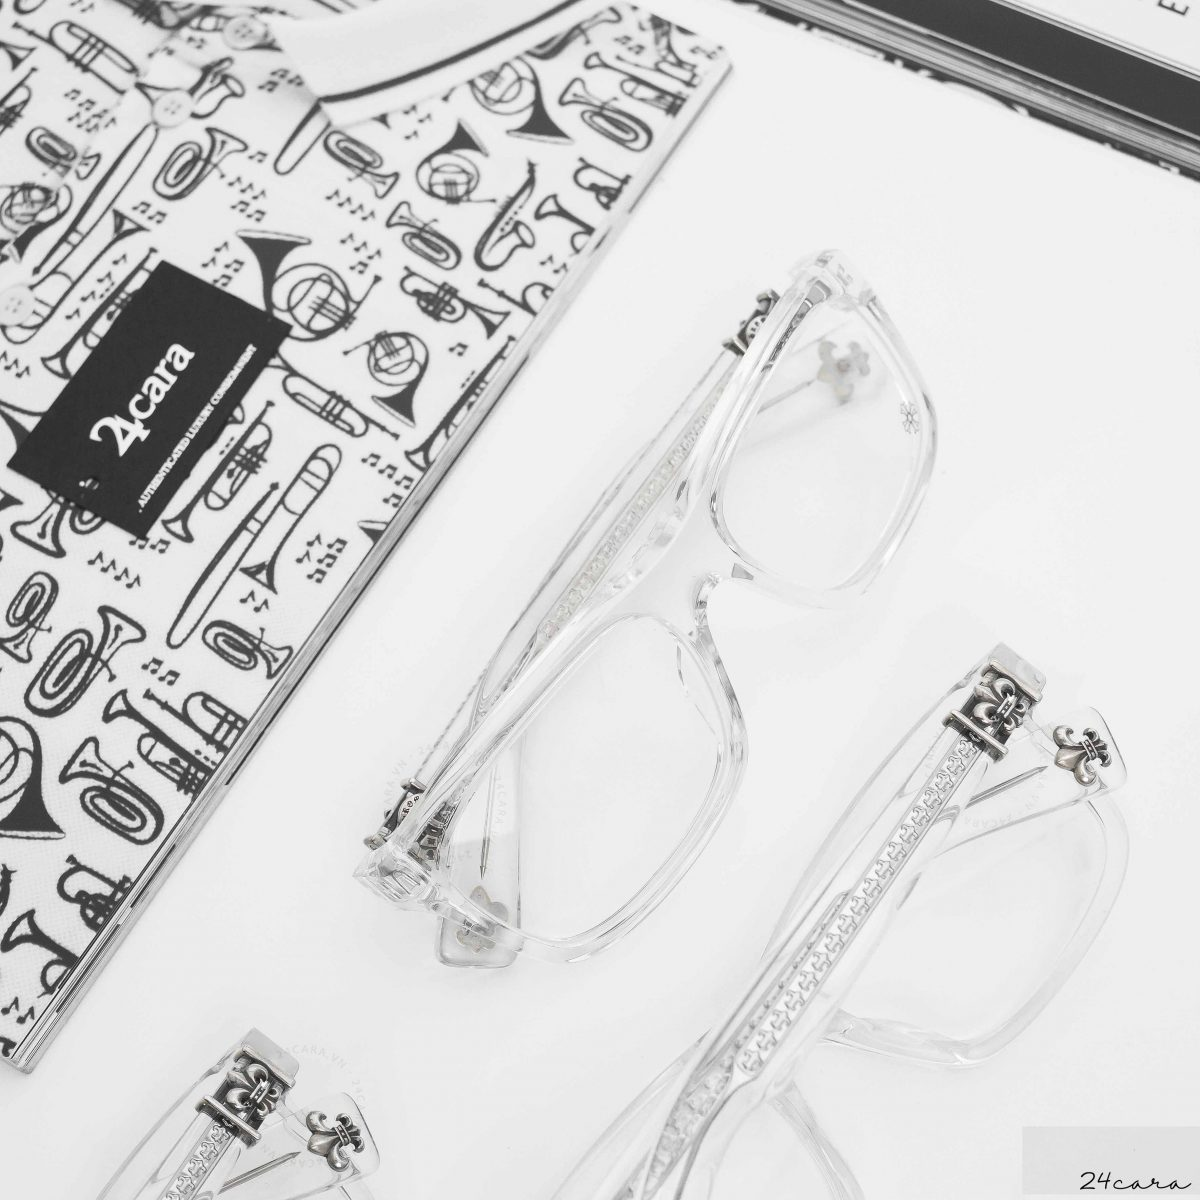 CHROME HEARTS MYDIXADRYLL - CRYS EYEGLASSES